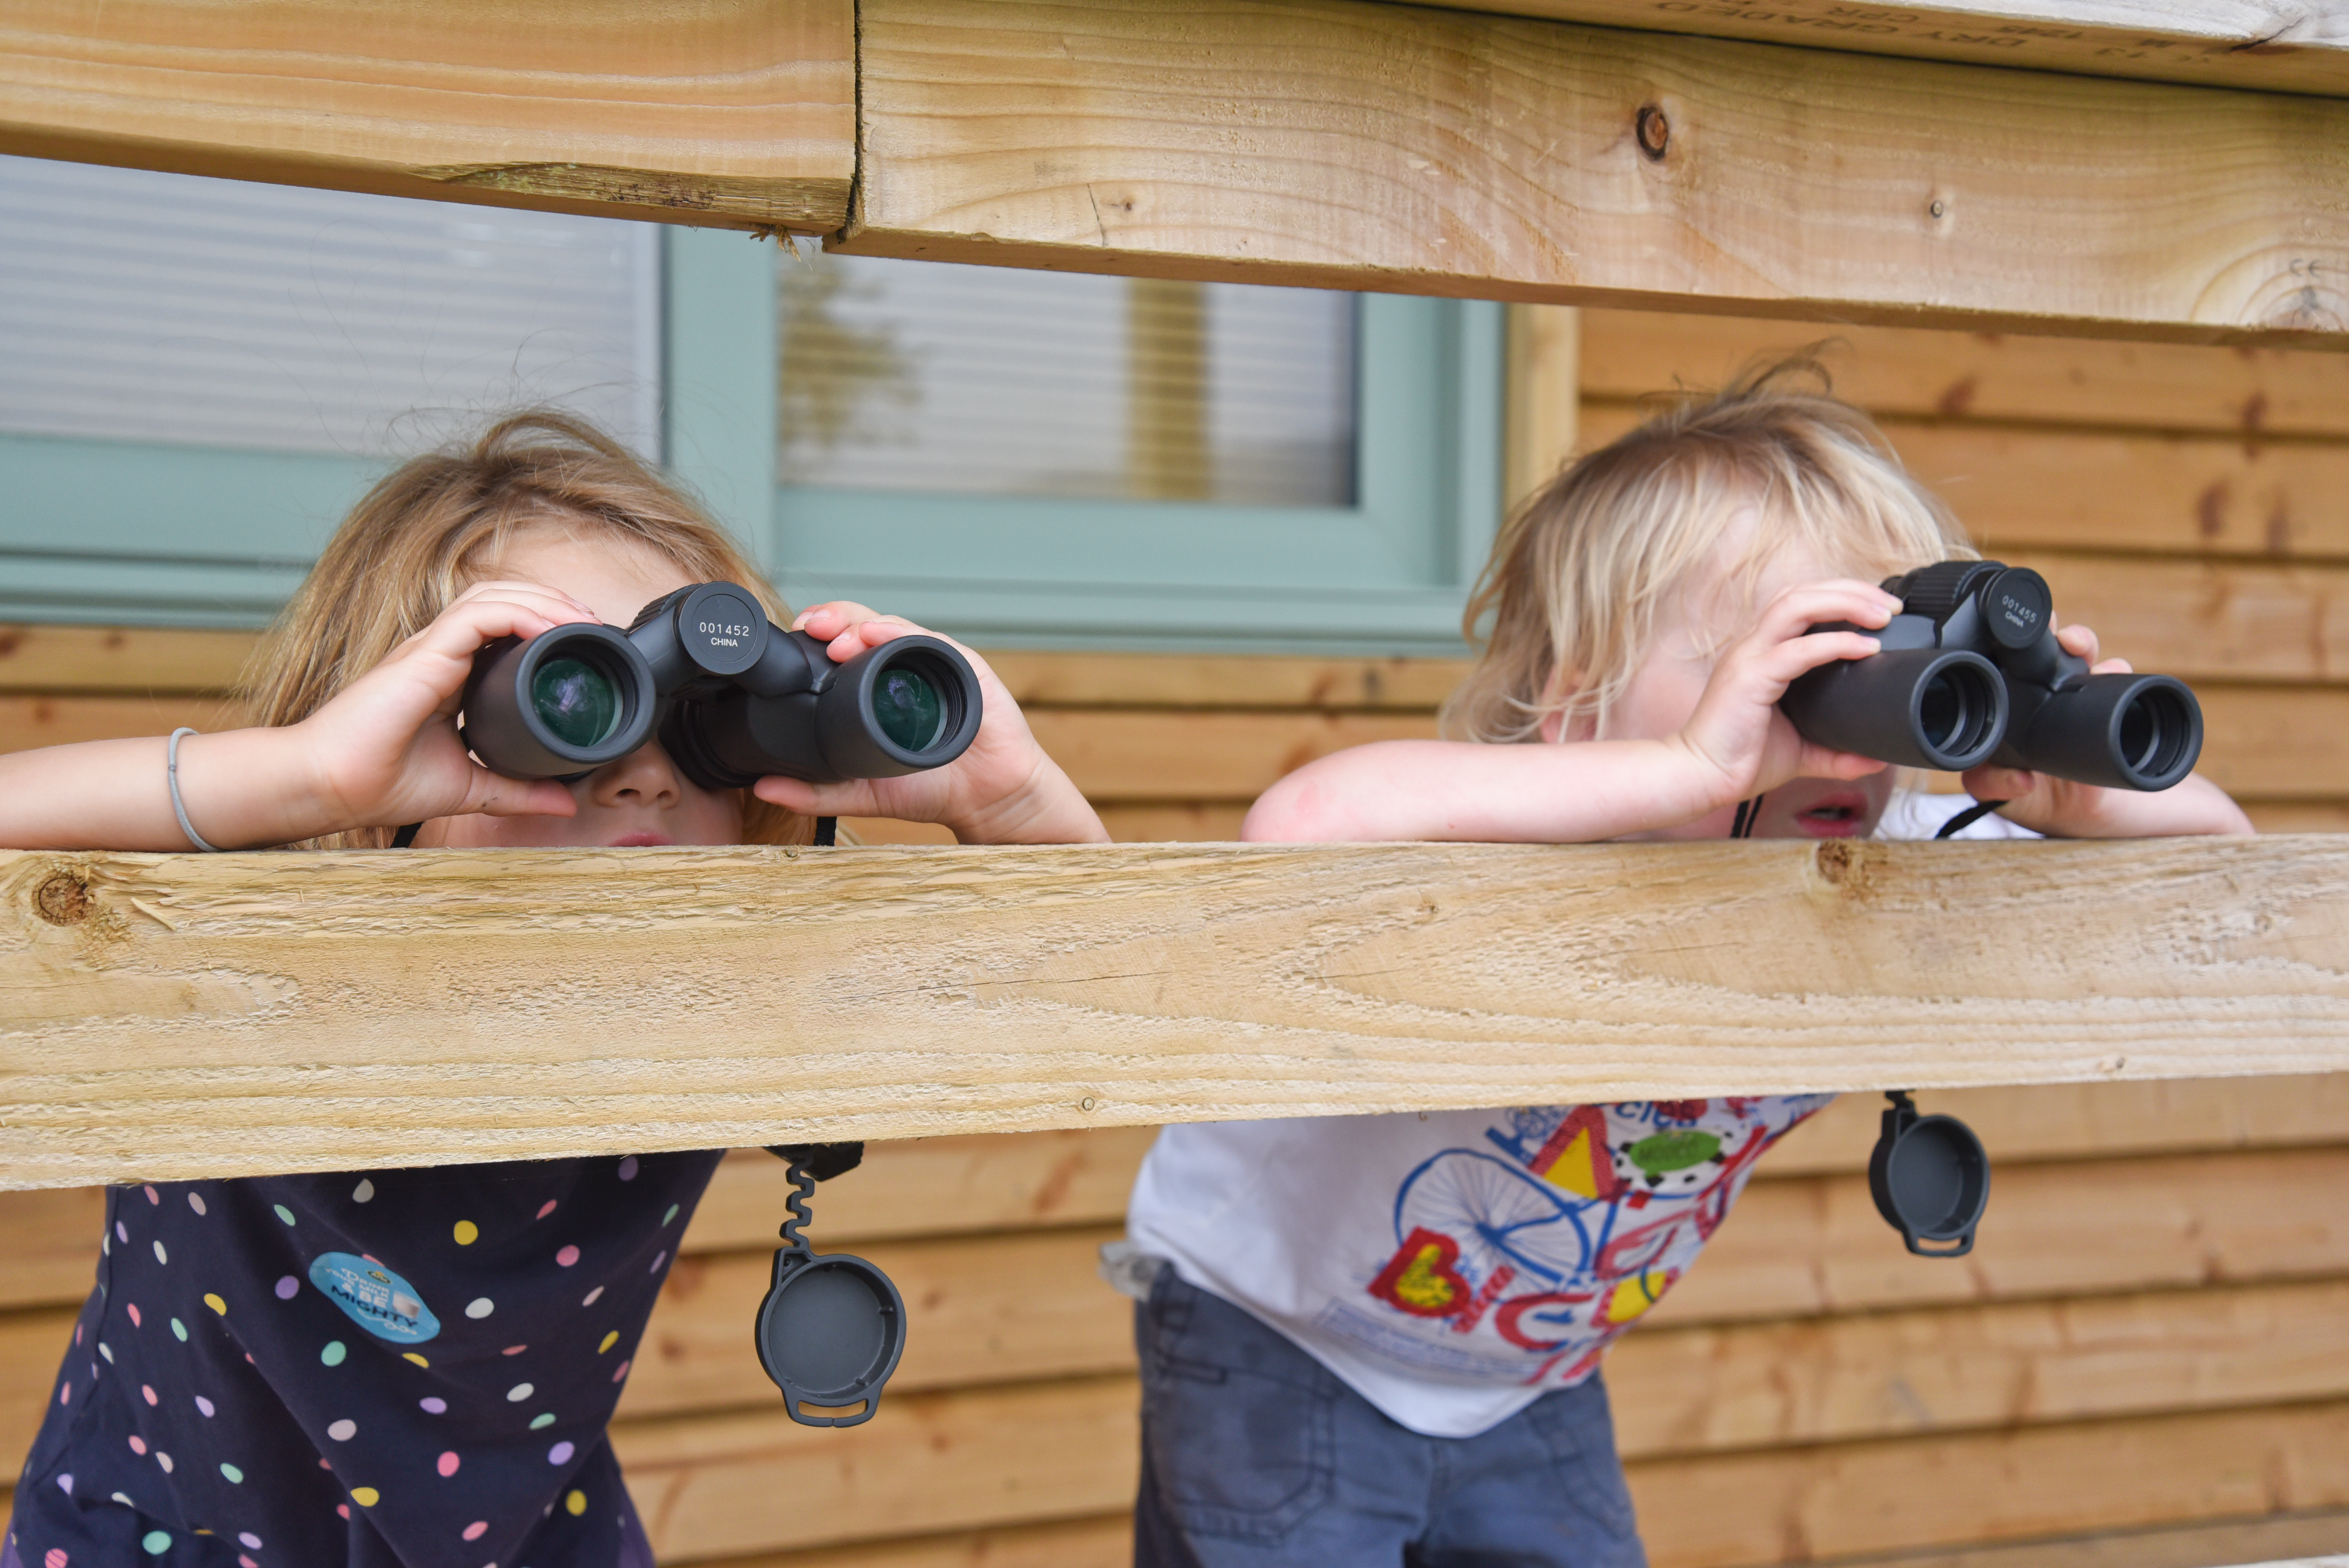 Bird watching for children - (Thurs 11 April) - 3.00 - 4.00 pm